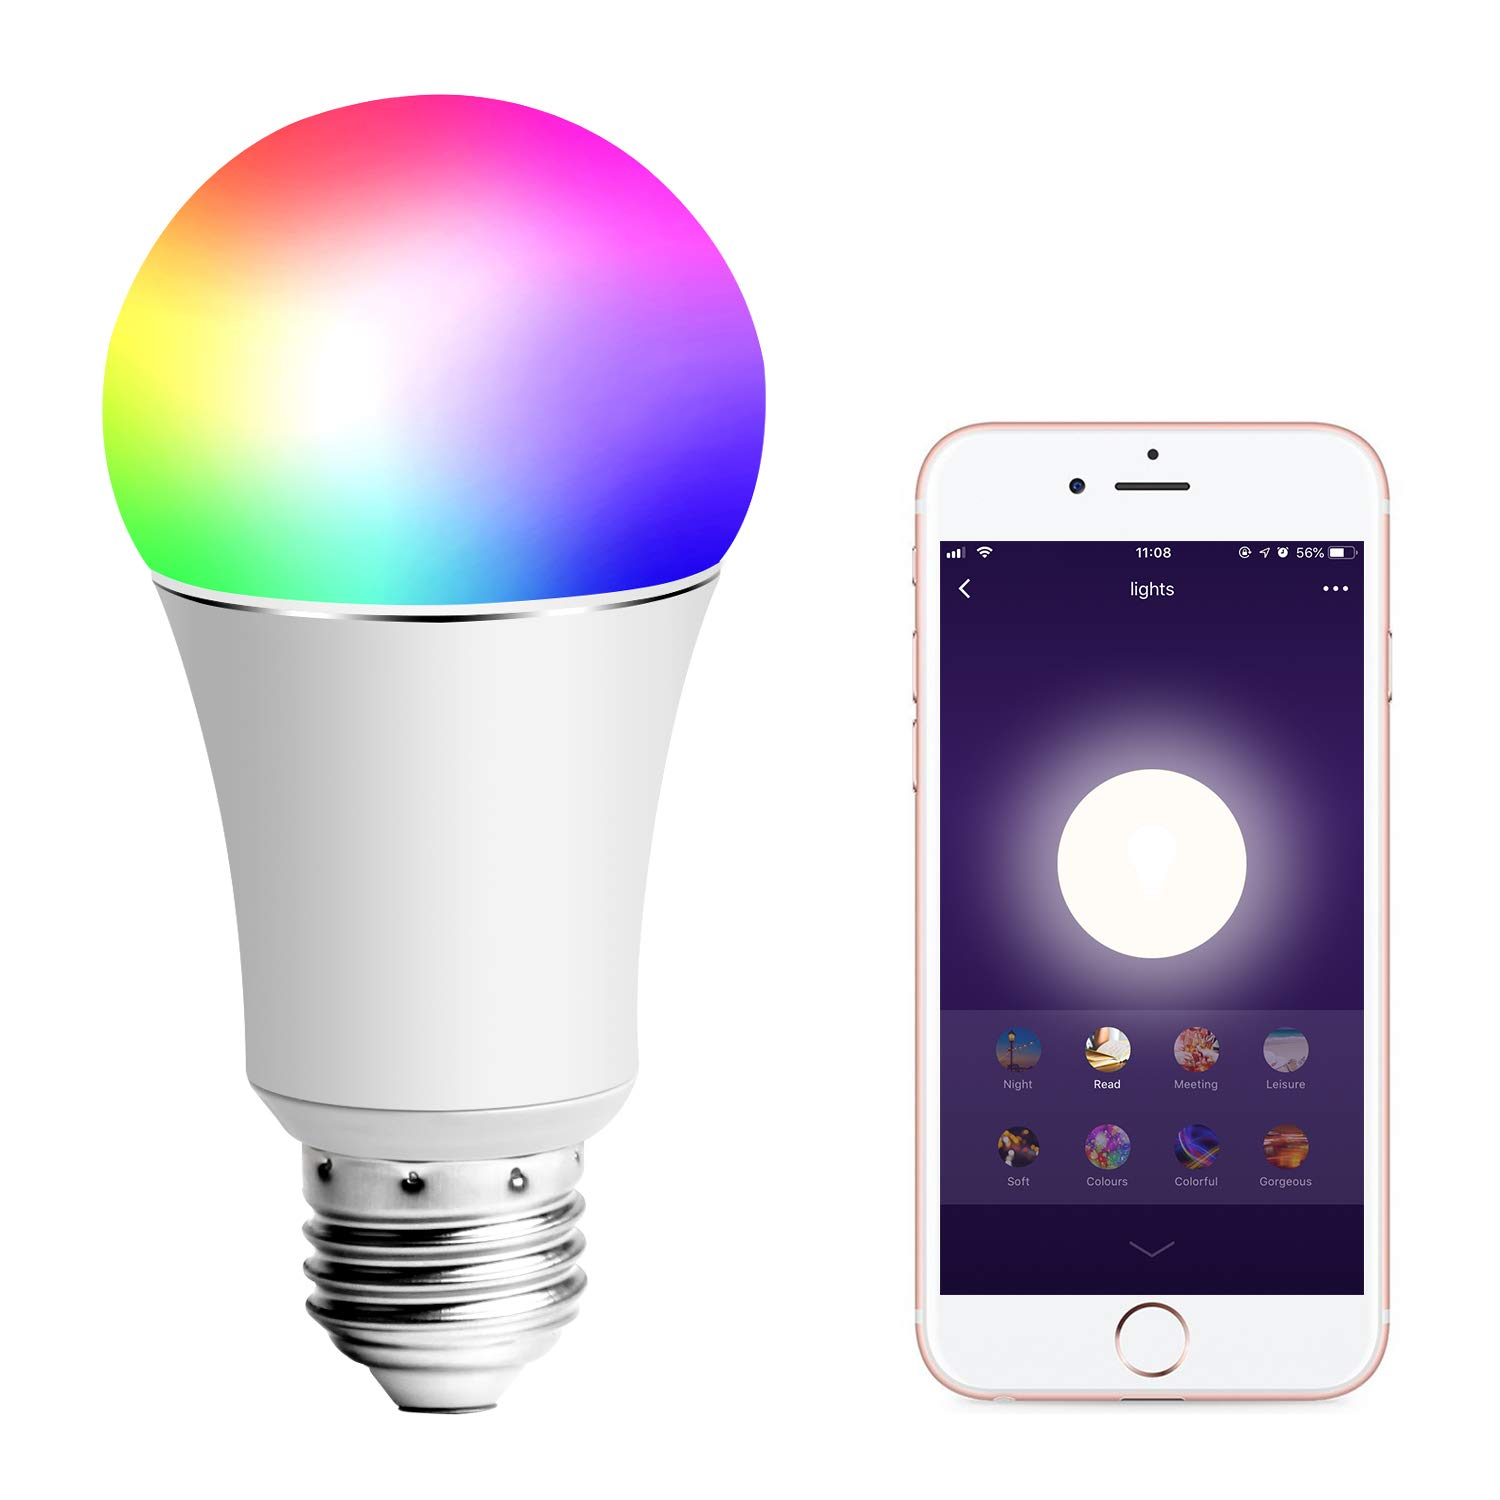 HF-SBE27-9: 9W E27 RGB LED Smart Bulb,WiFi Light Bulb,Multicolor,Dimmable